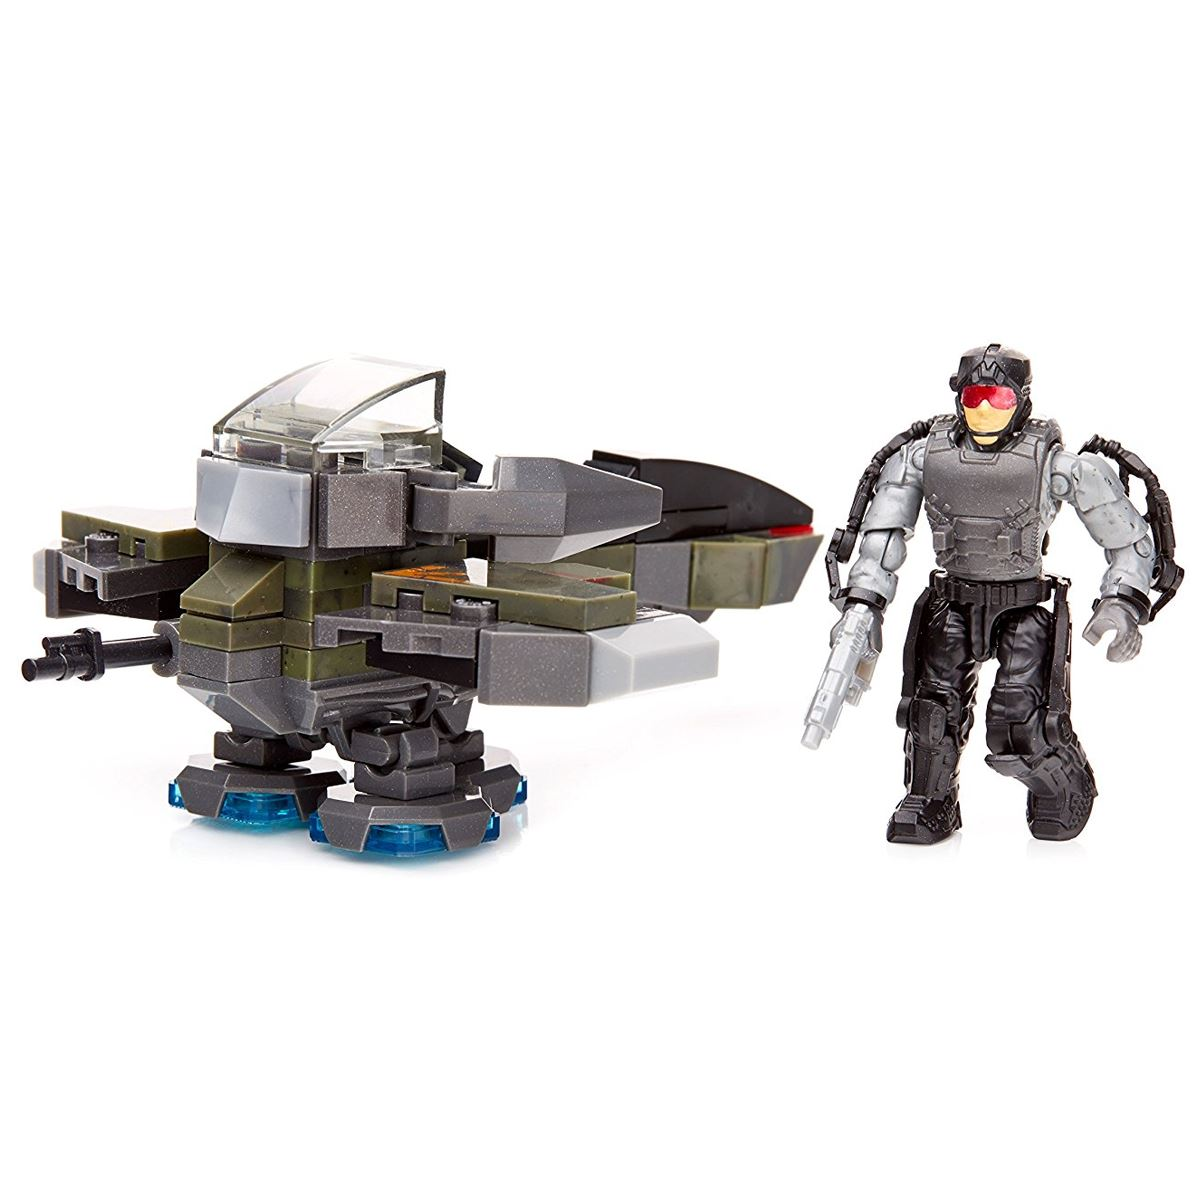 New-Mega-Blocks-Call-Of-Duty-Recon-Outpost-Or-Rocket-Turret-w-Figures-Official